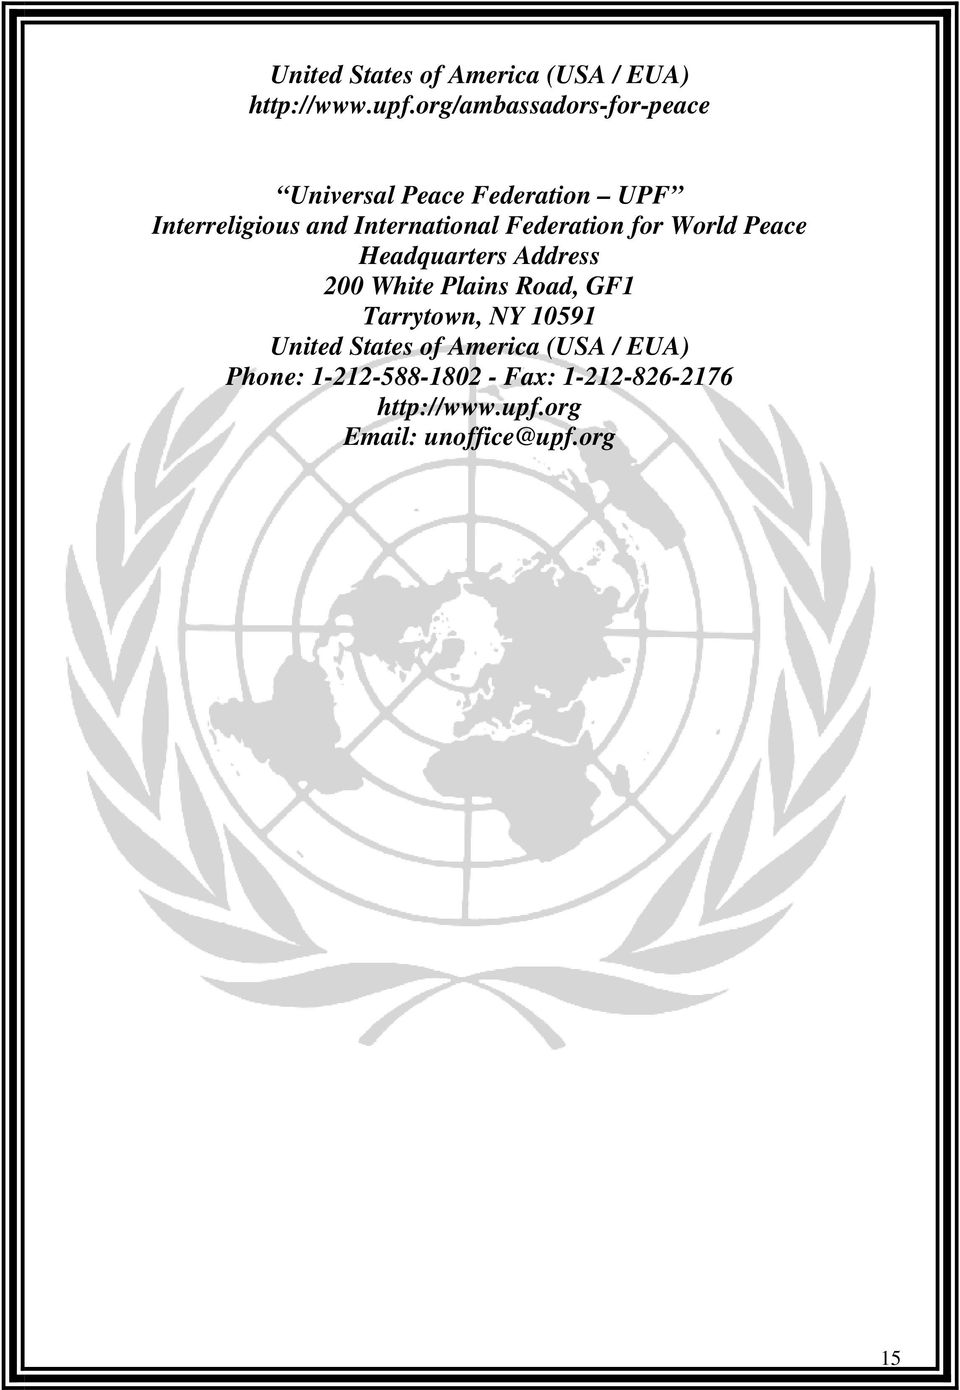 Federation for World Peace Headquarters Address 200 White Plains Road, GF1 Tarrytown, NY